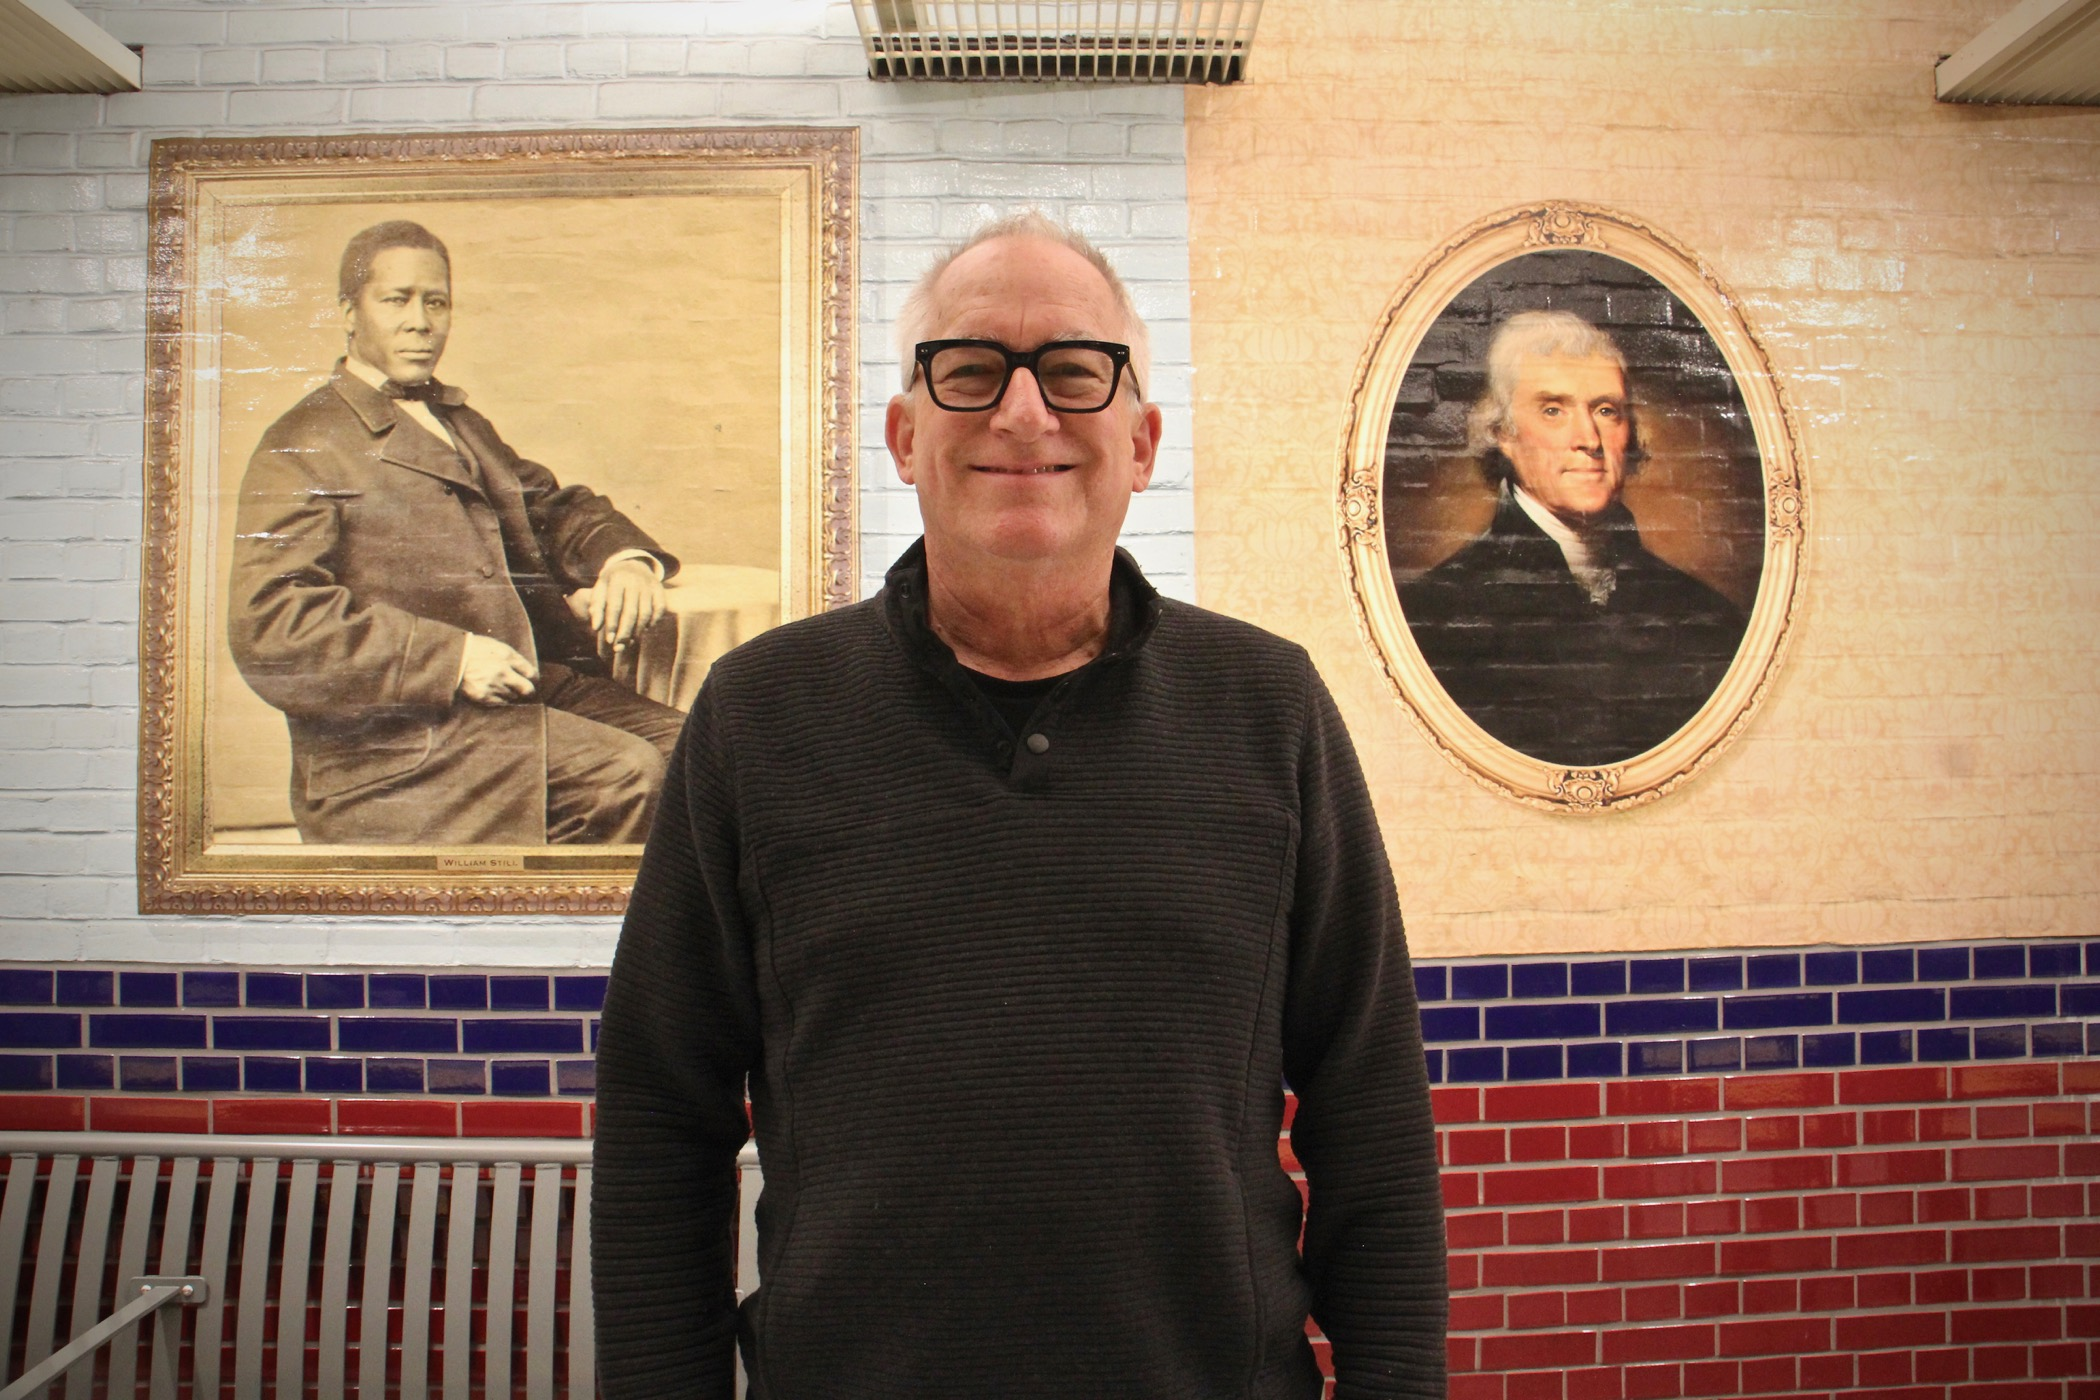 Artist Tom Judd created the murals for the Independence Hall SEPTA Station. He stands between portraits of abolitionist William Still and founding father Thomas Jefferson. (Emma Lee/WHYY)